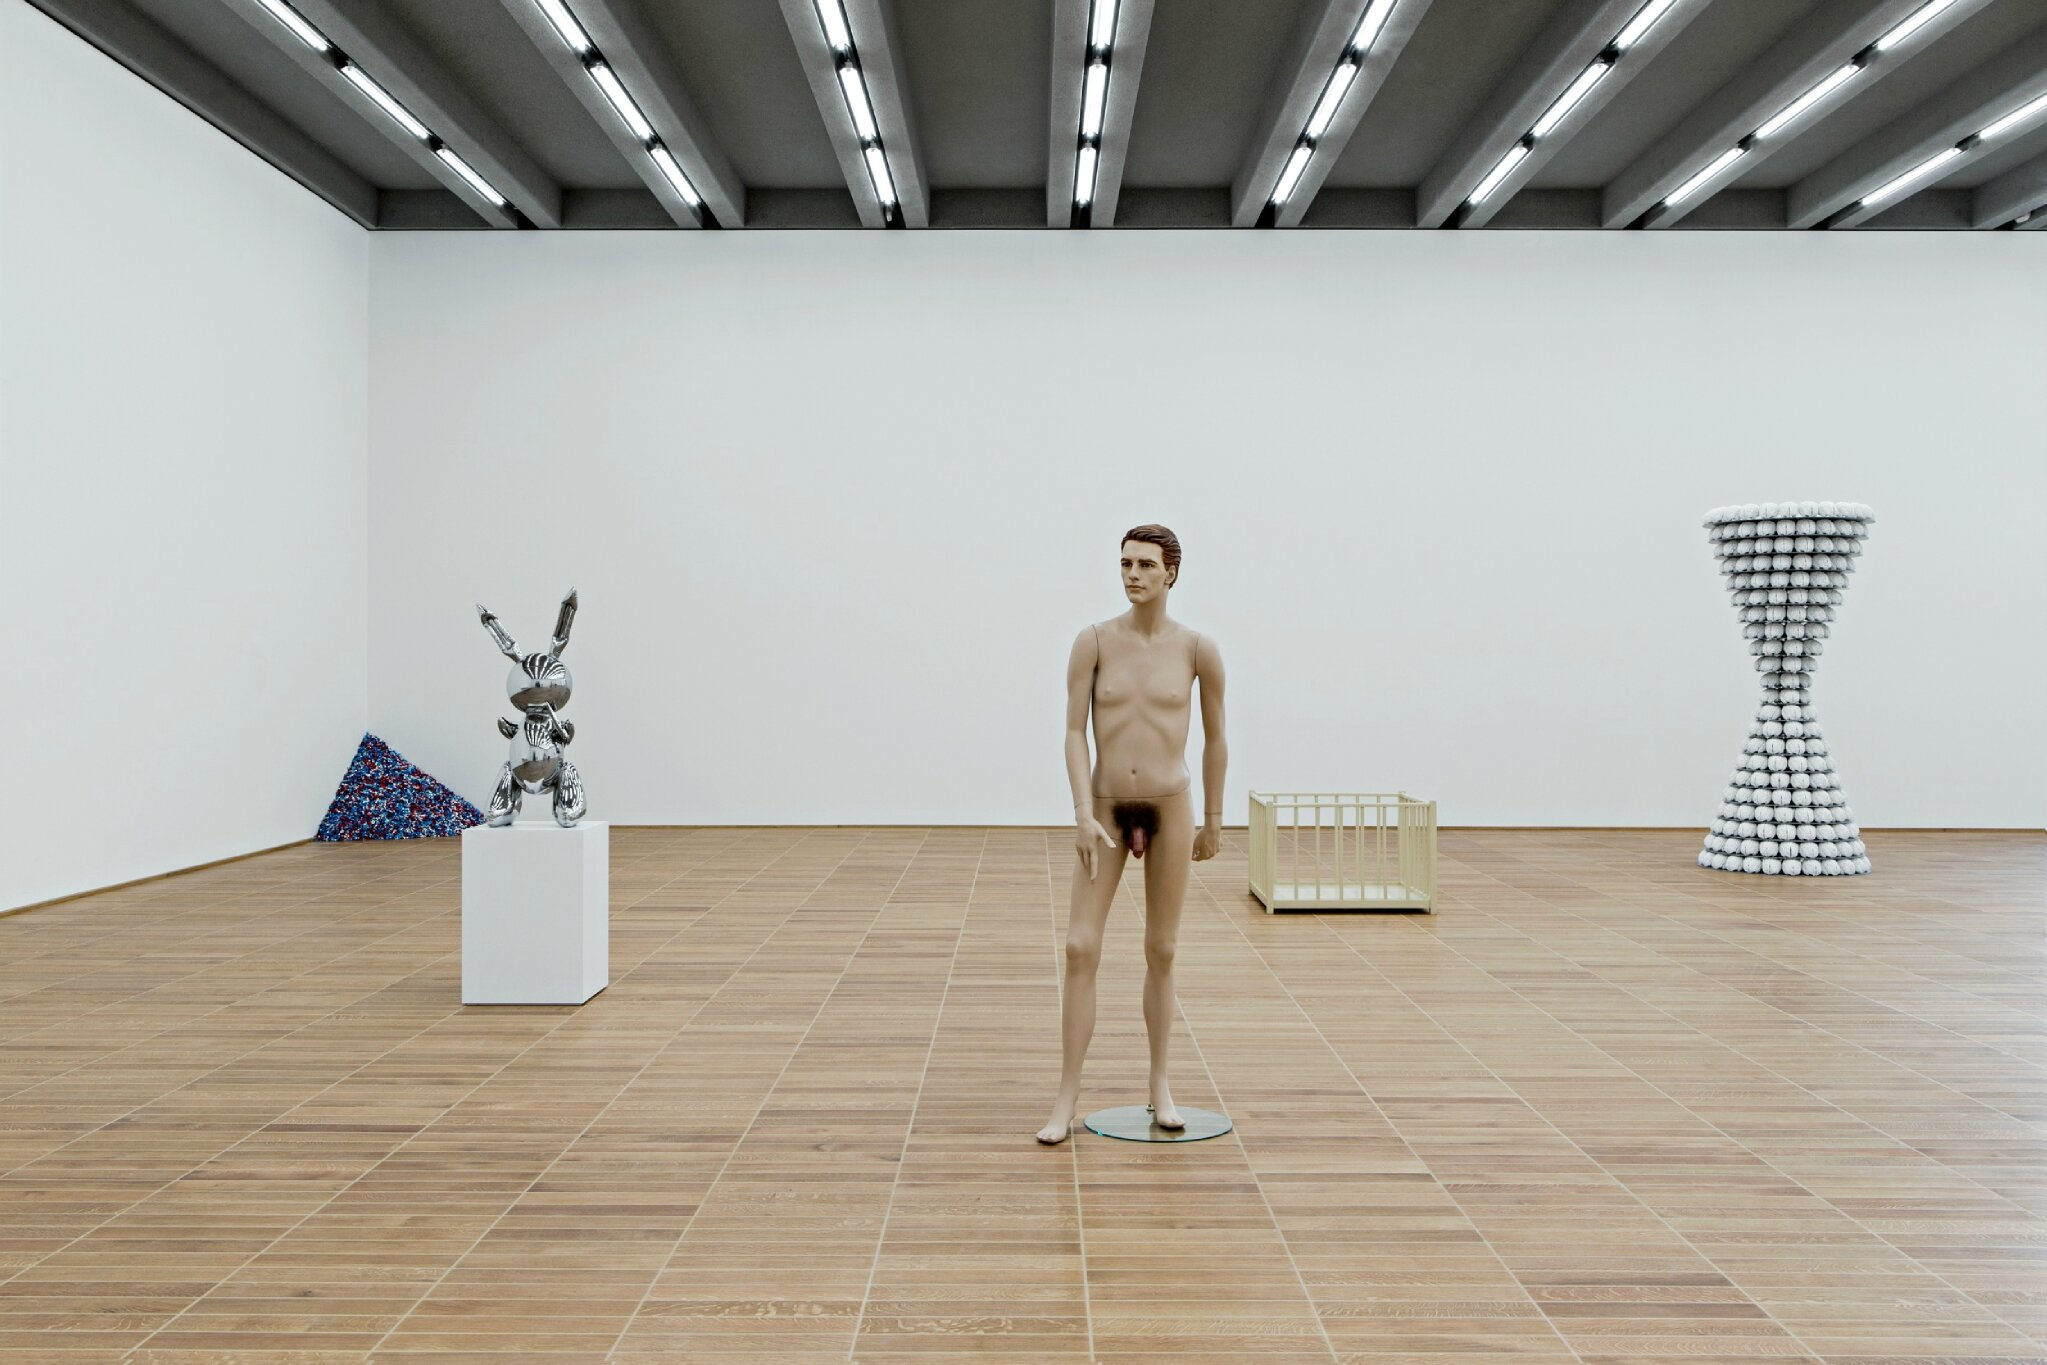 Exhibition focuses on sculpture from the Second World War to the present